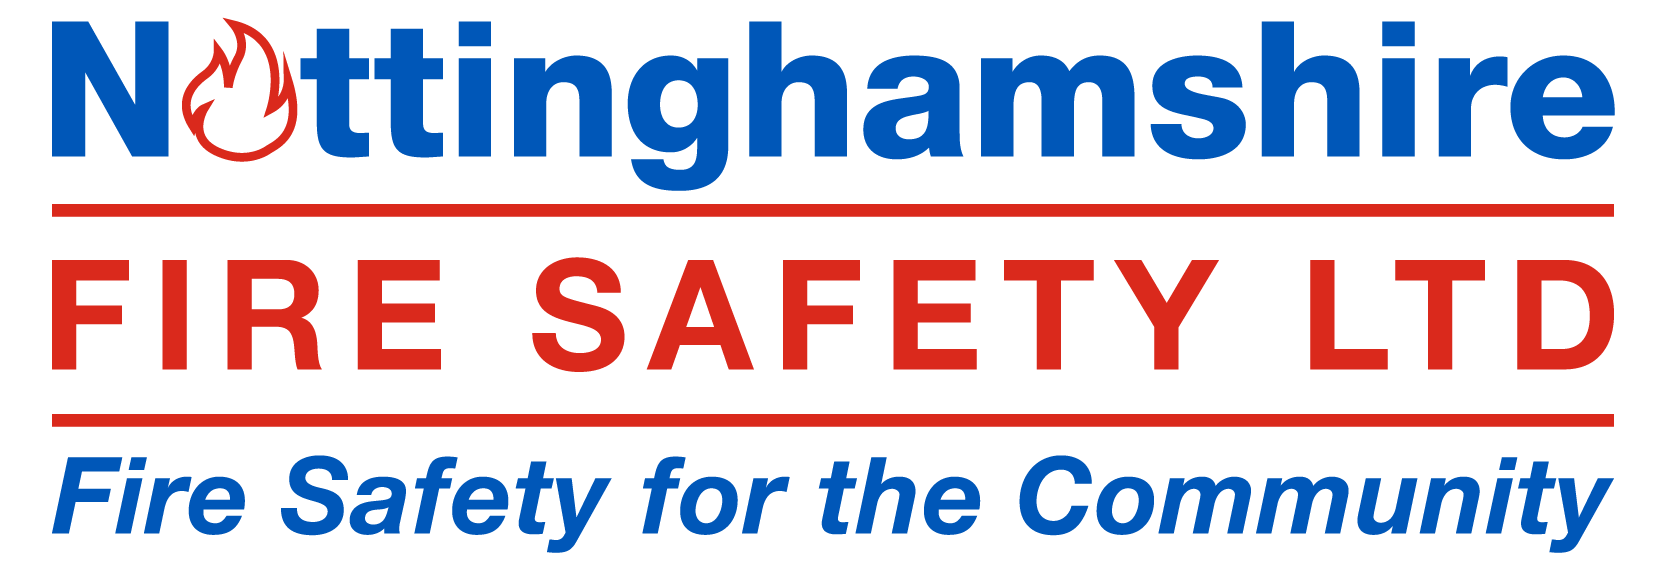 Nottinghamshire Fire Safety Limited